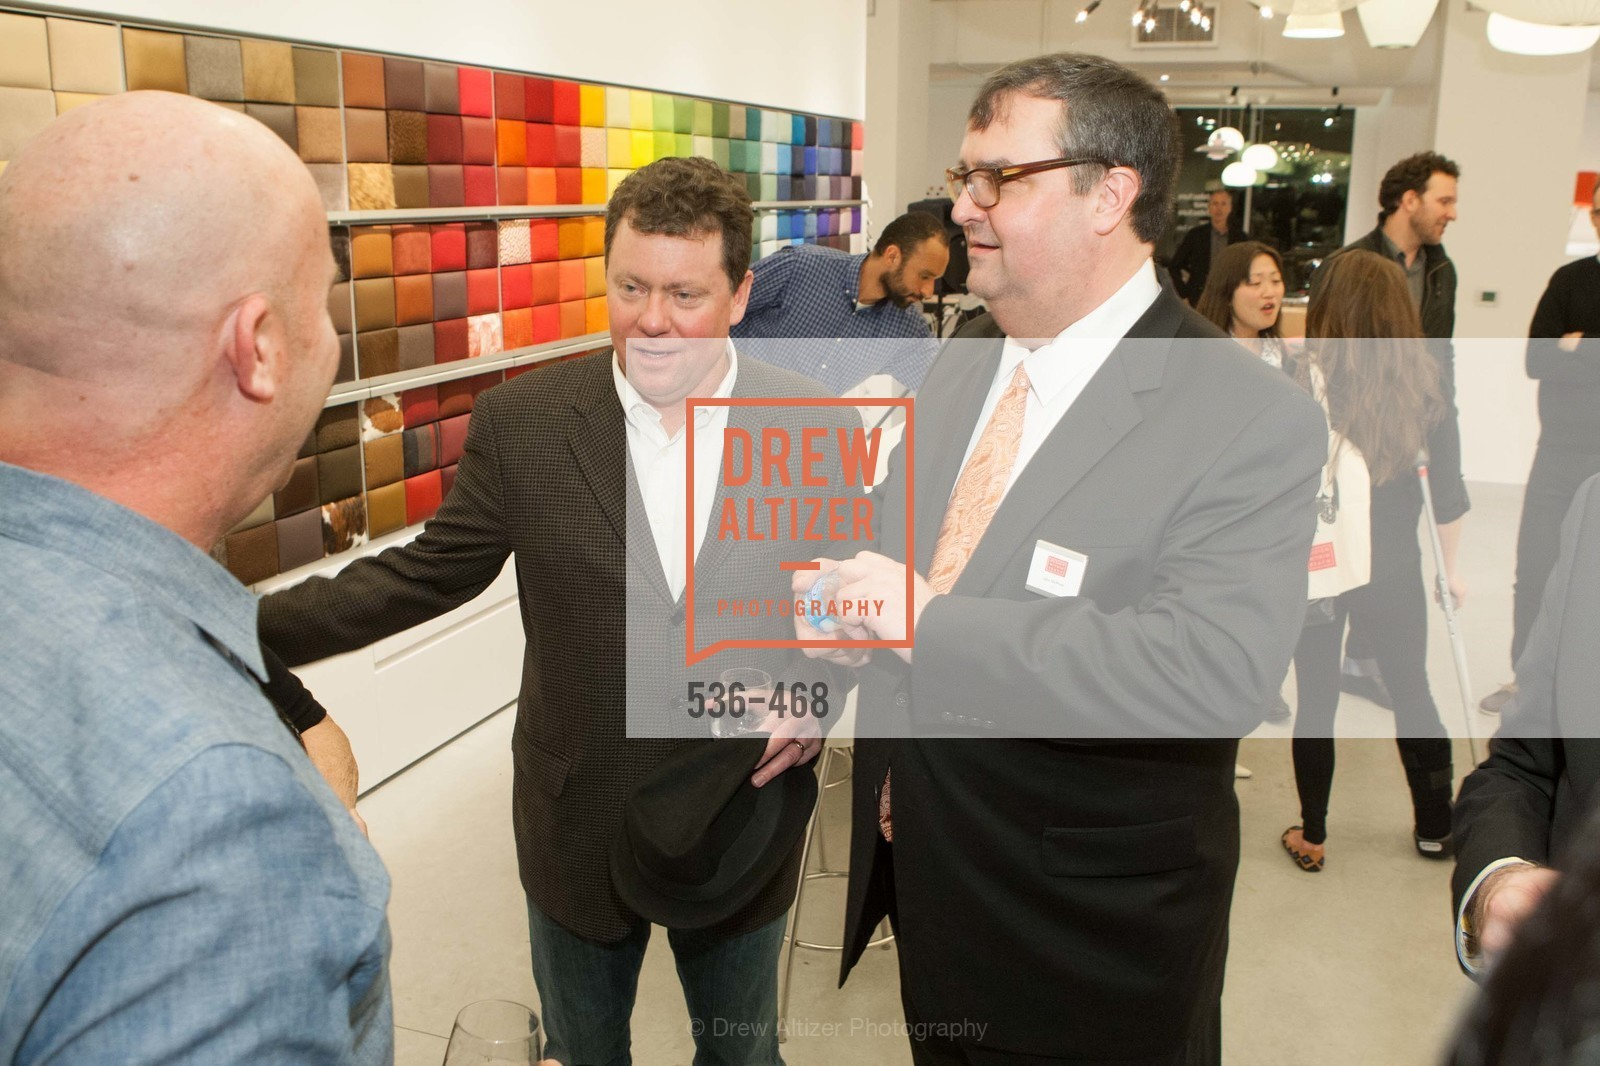 Jay Leupp, John McPhee, DESIGN WITHIN REACH Studio Opening, US. US, January 21st, 2014,Drew Altizer, Drew Altizer Photography, full-service agency, private events, San Francisco photographer, photographer california